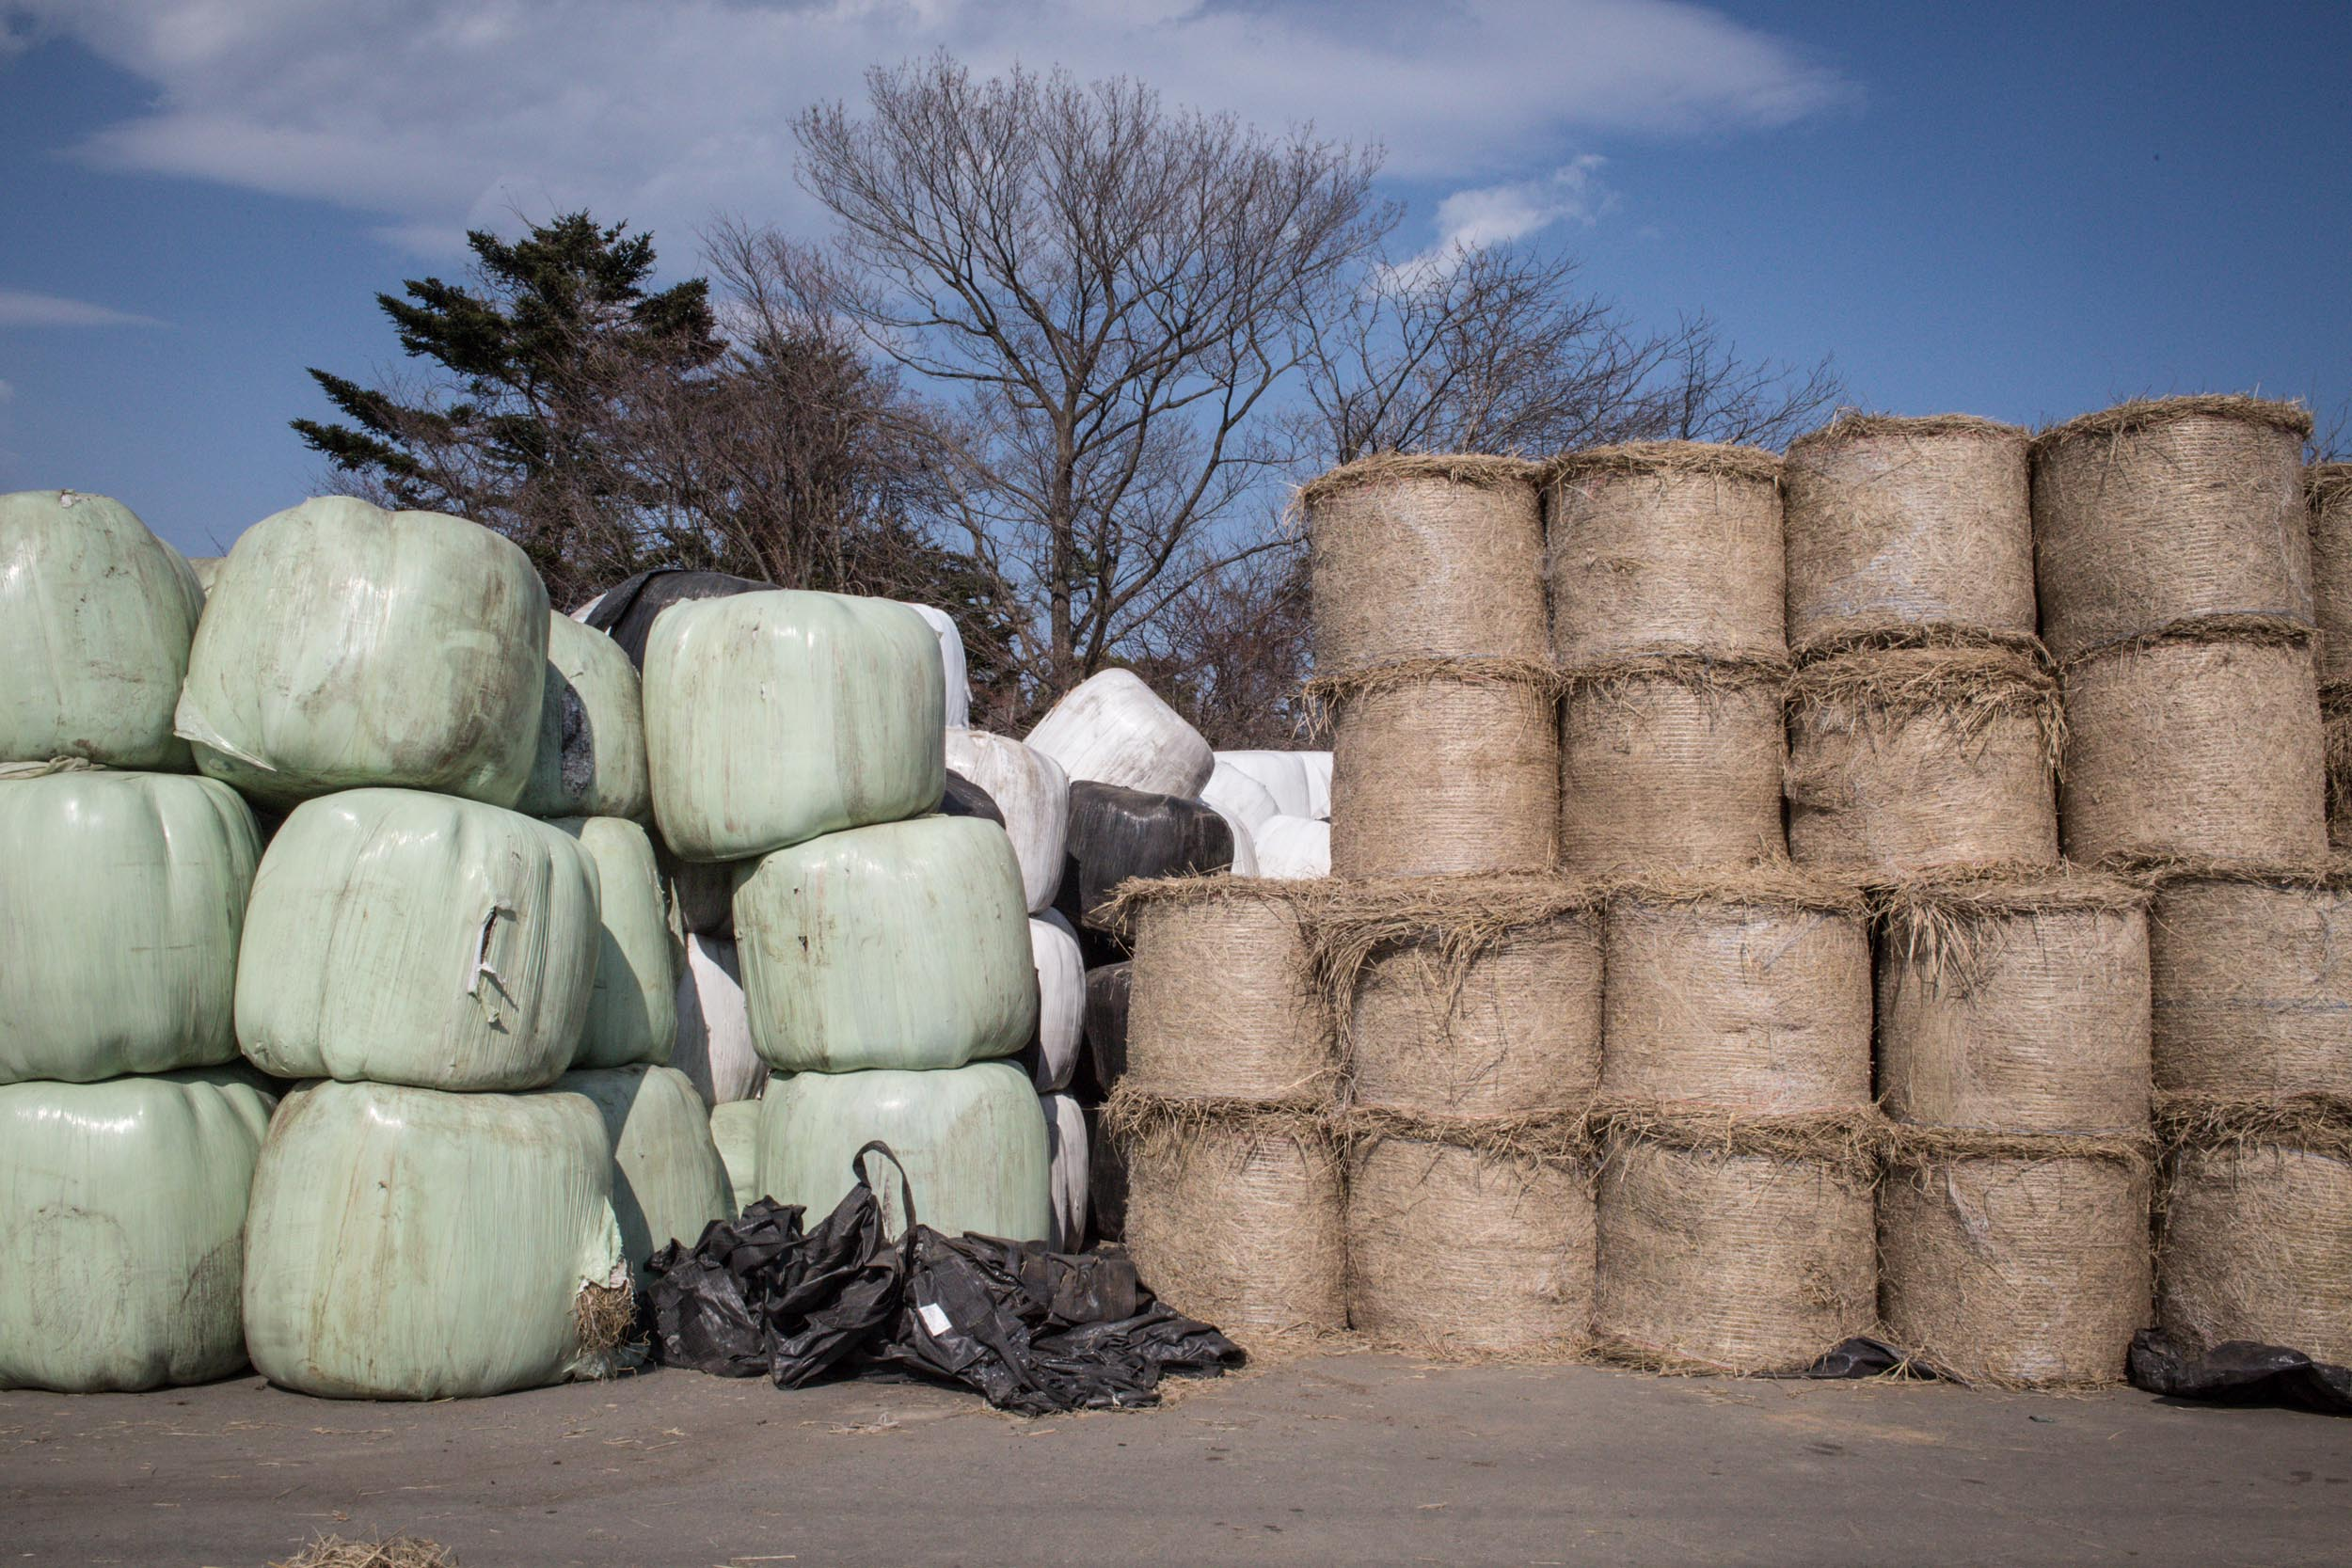 Rolls of grass sent to the Ranch of Hope by people from other parts of Japan. Kibo no Bokujo or the Ranch of Hope is run by Mr Masami Yoshizawa who decided not to kill the cattle as ordered by the government after evacuation orders were issued for the residents within 20kms of the accident zone. Today there are over 330 cattle being taken care of in the Ranch of Hope. All grass in the region was contaminated due to the nuclear accident.